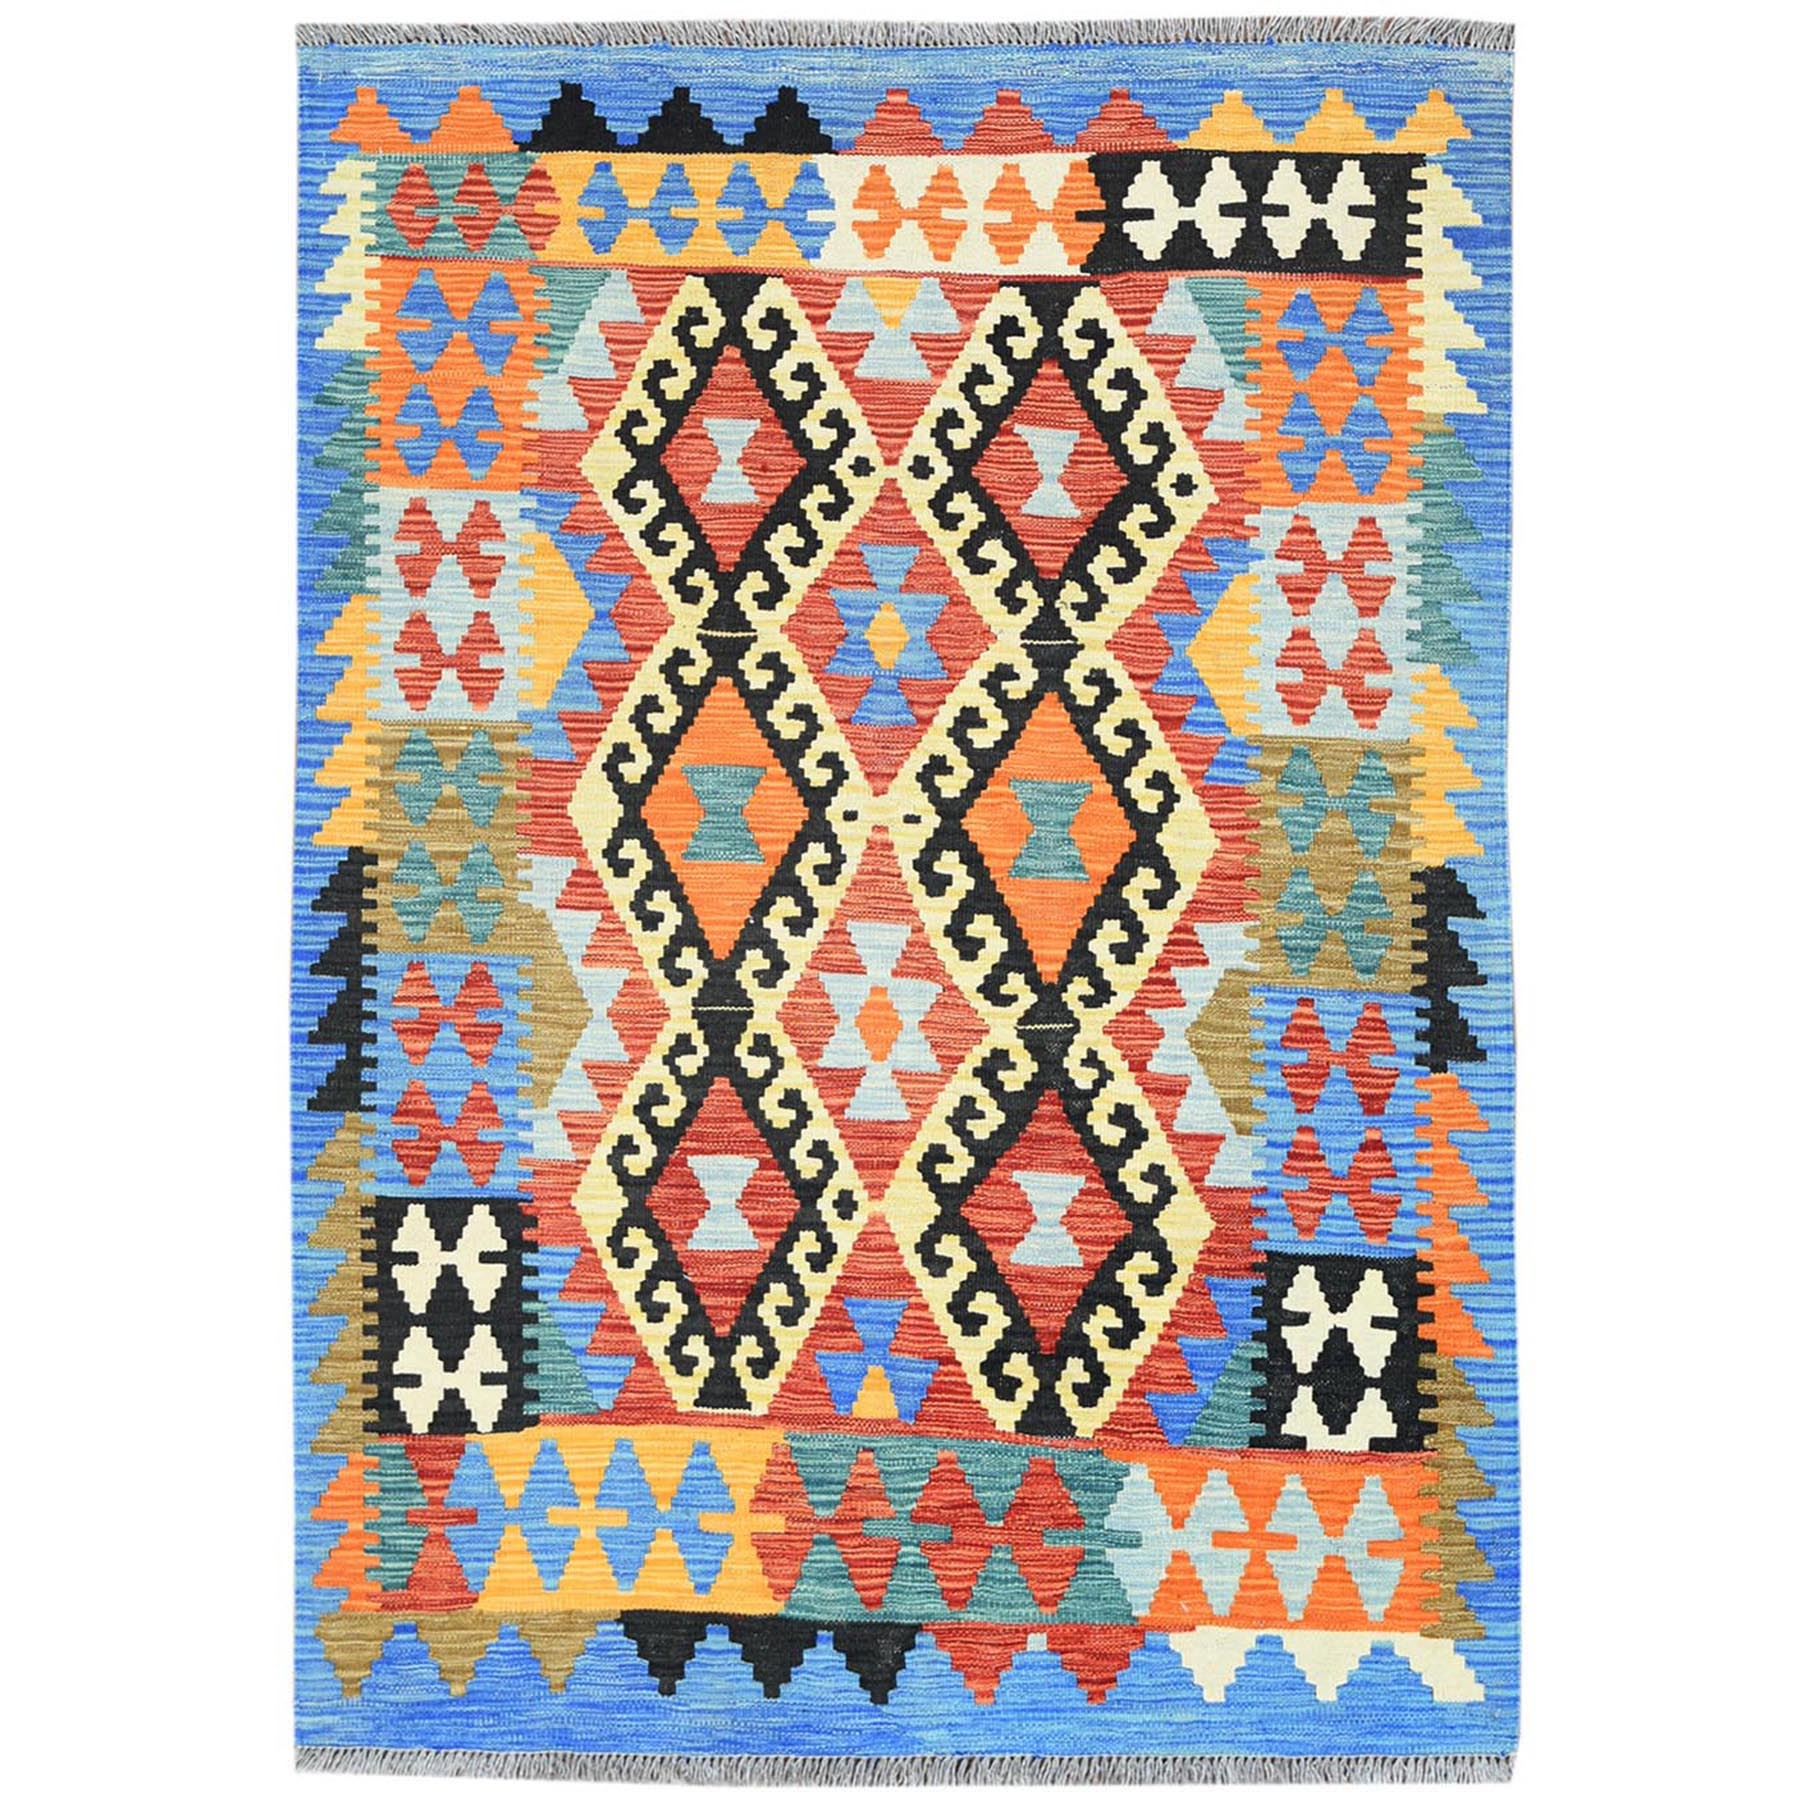 "3'6""x5' Colorful Geometric Design Afghan Kilim Reversible Pliable Wool Hand Woven Oriental Rug"